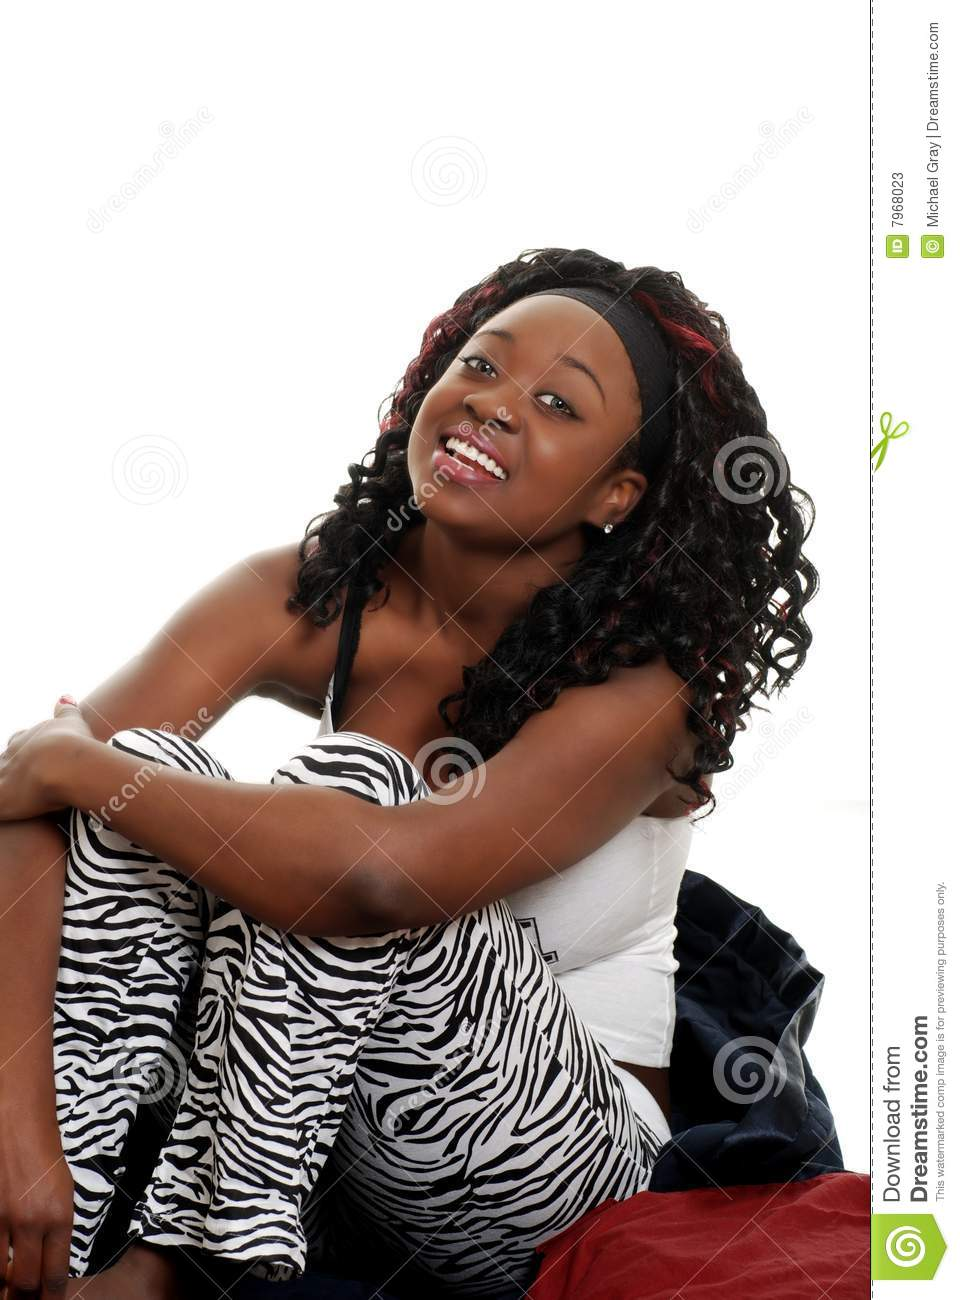 Black Woman Sitting On Bed Laughing Stock Photos Image